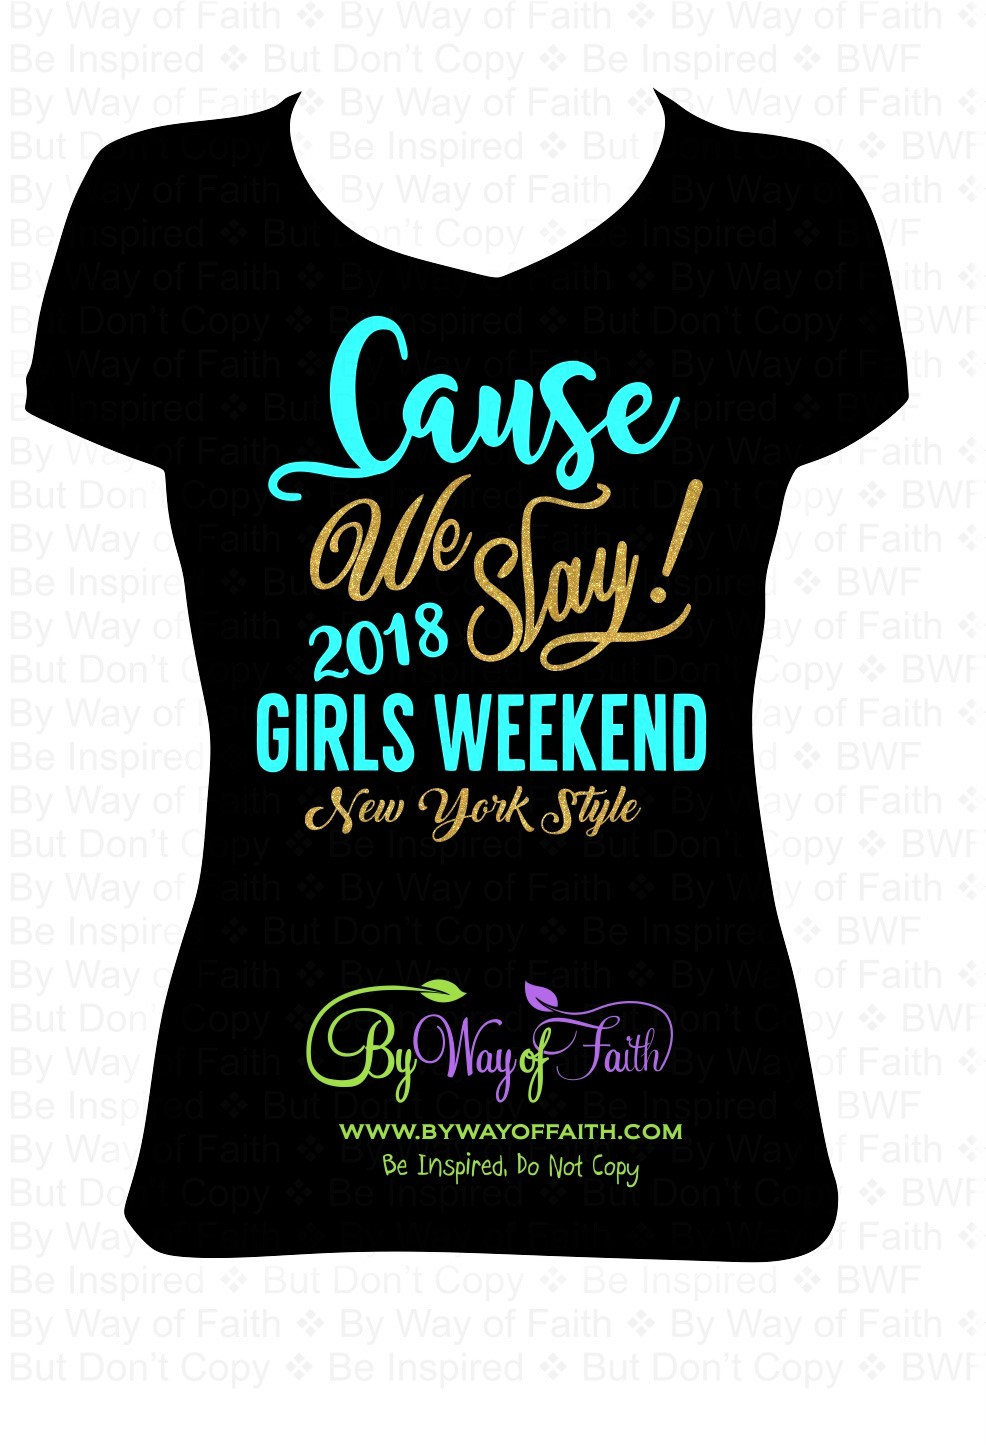 Cause We Slay All Day New York Style Shirt Black Shirt Etsy